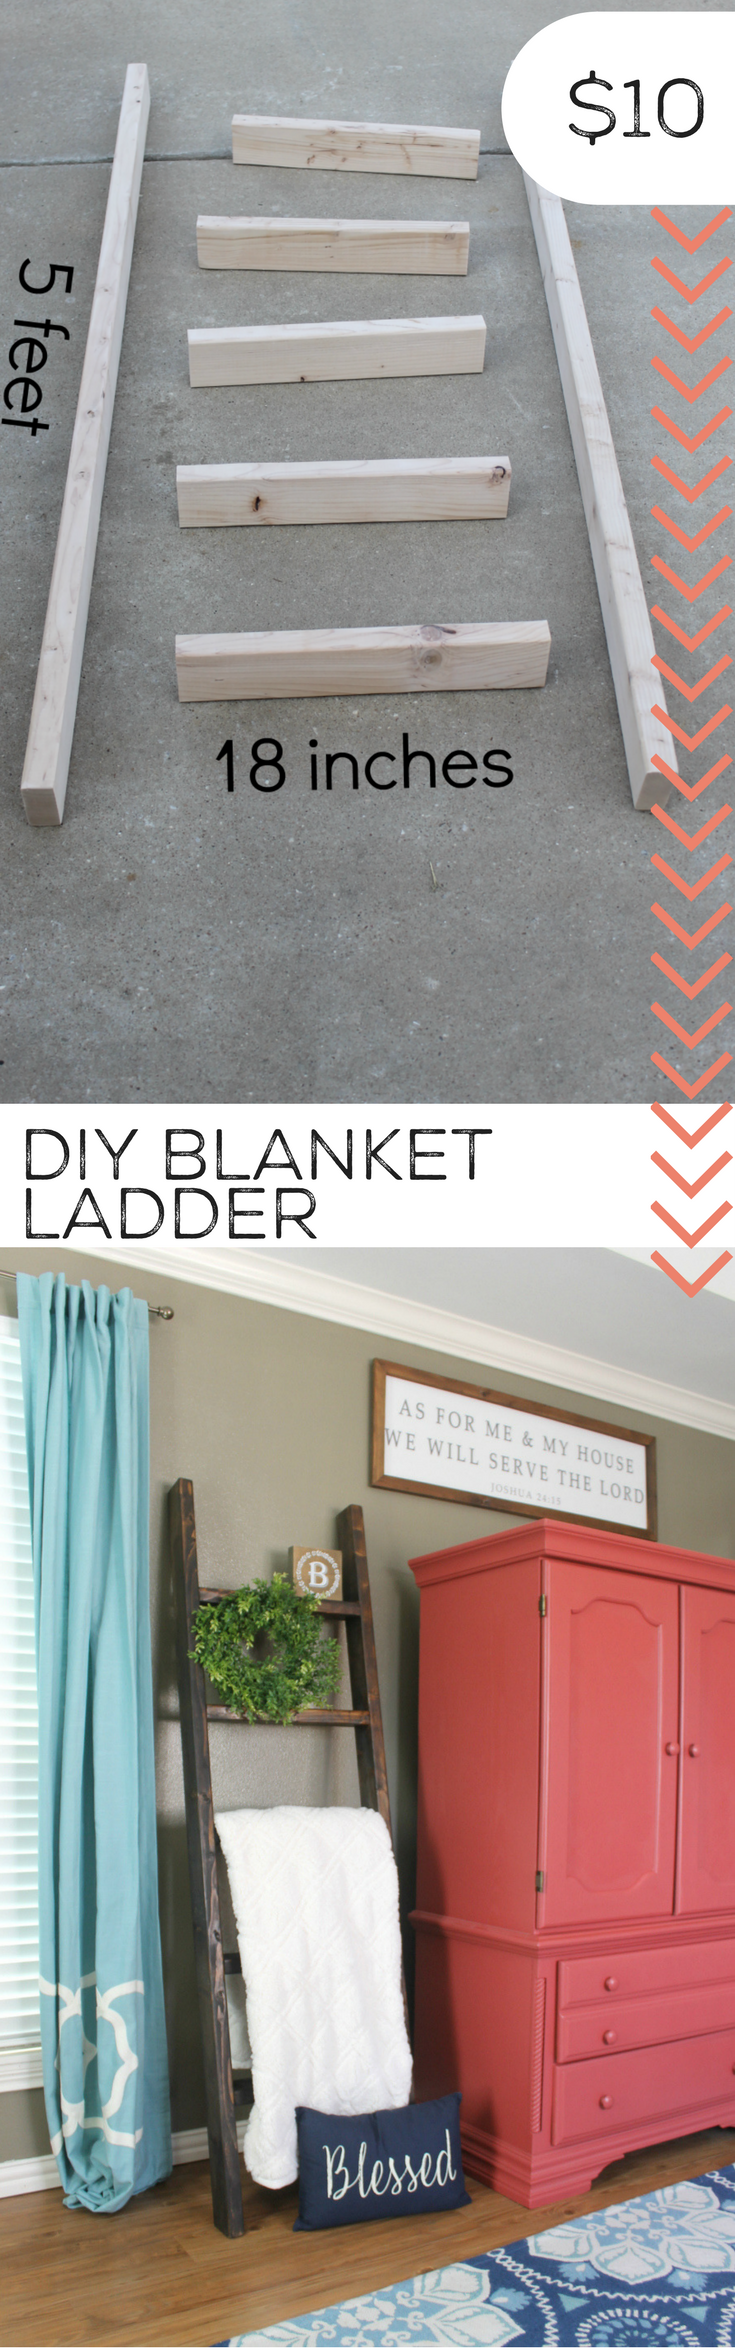 Turn scrape wood into a diy blanket ladder storage diy